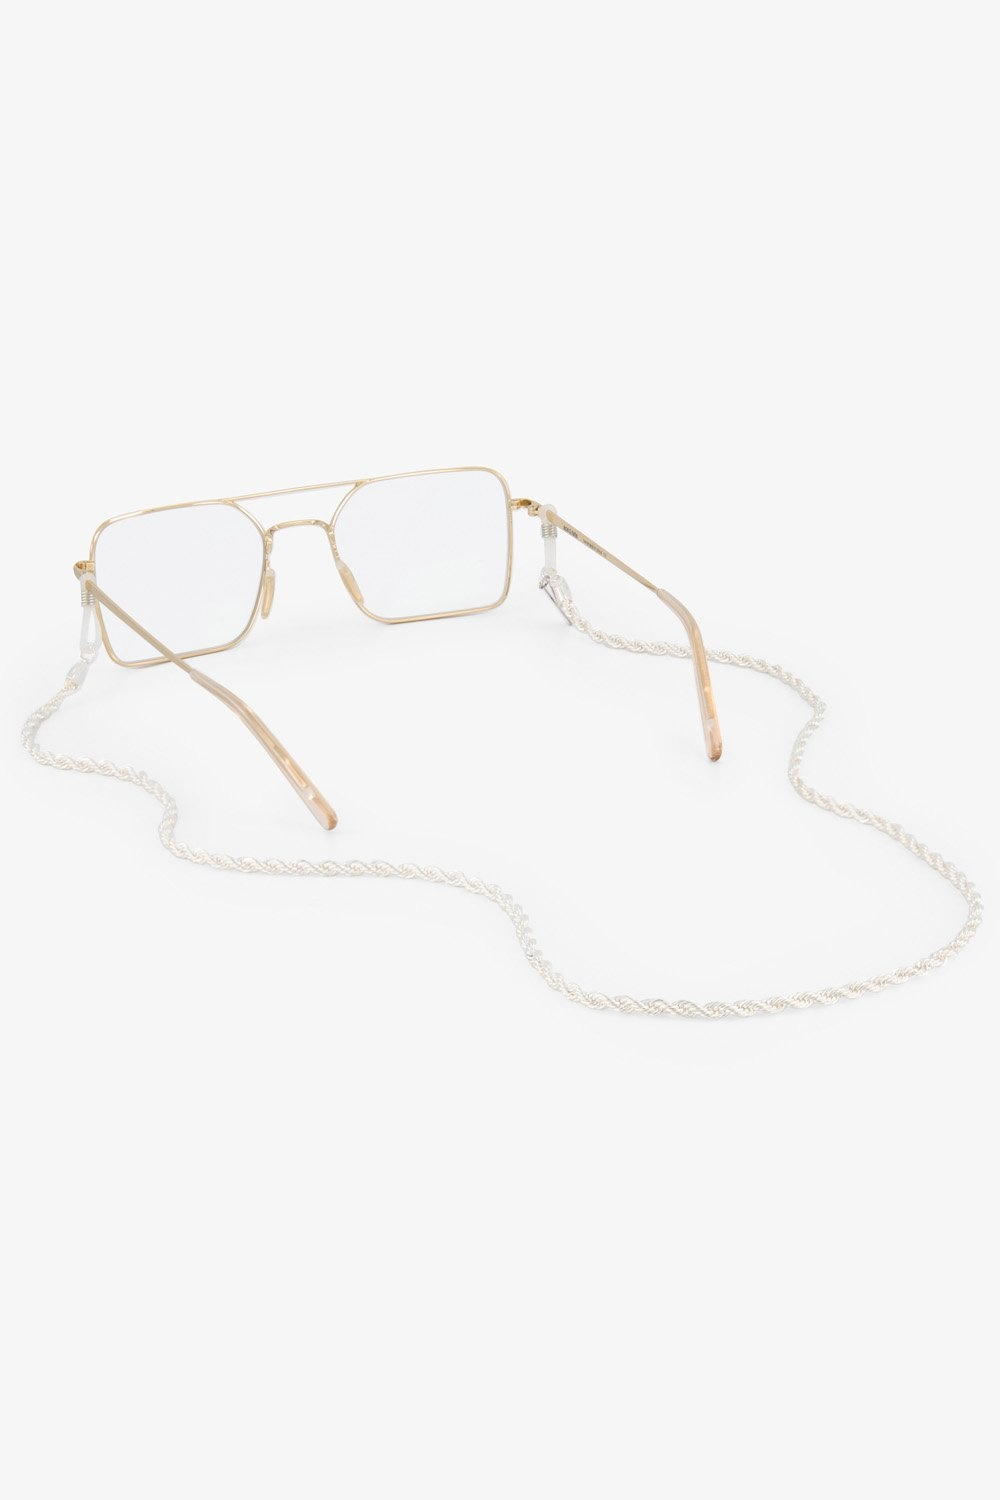 Sunnycord snake chain silver-1